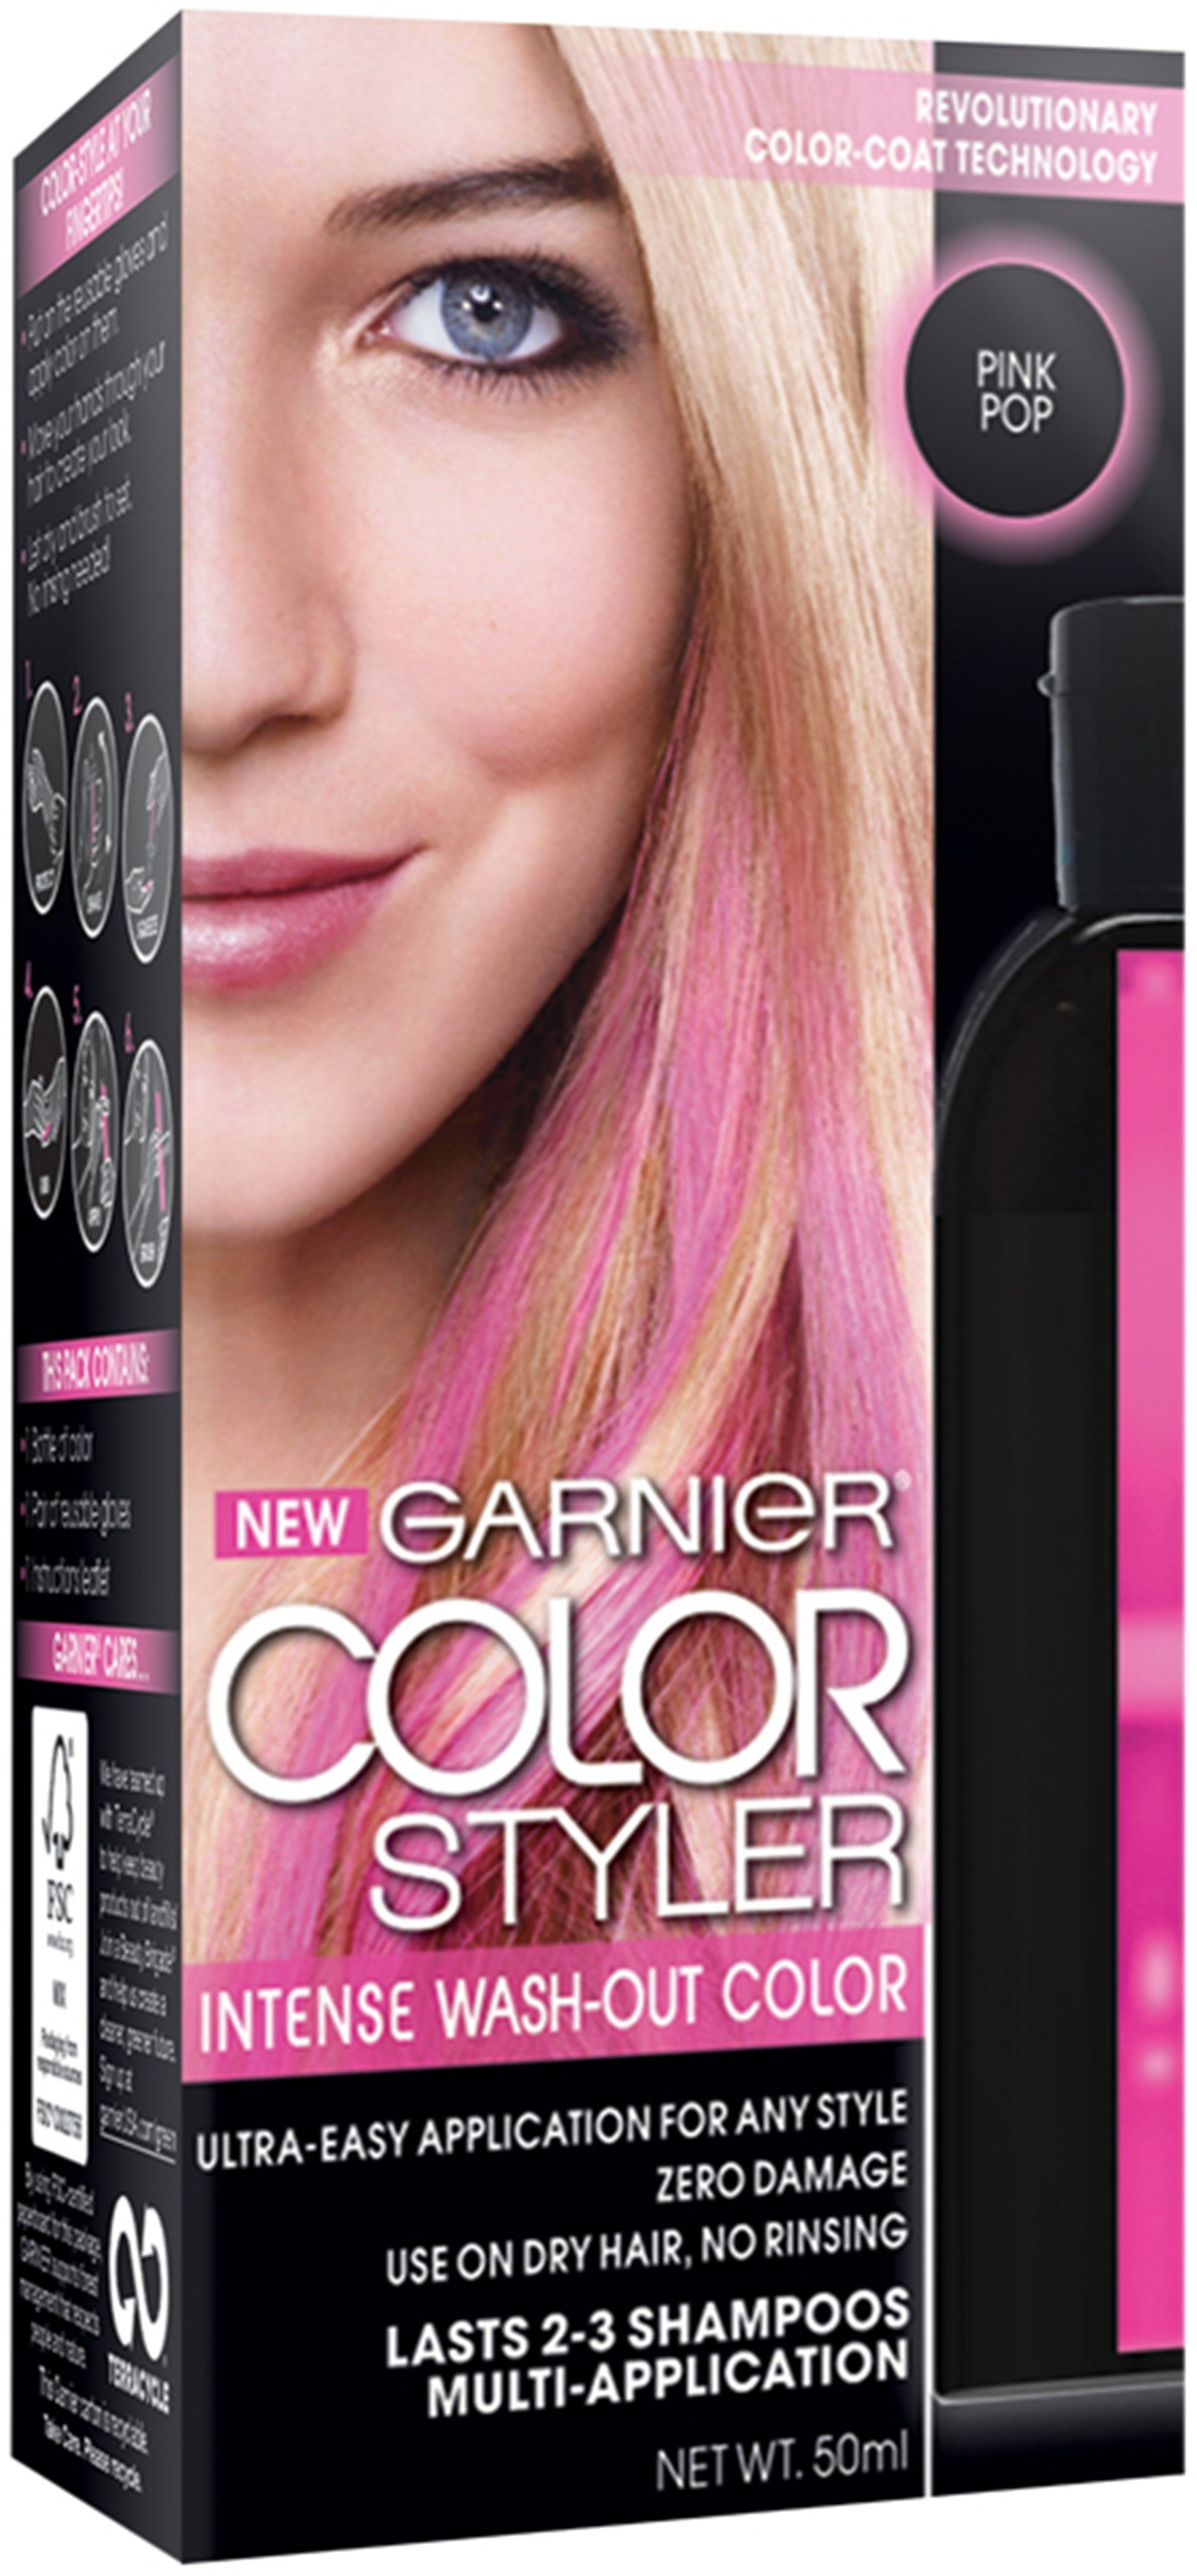 New Garnier Color Styler Intense Wash Out Haircolor Pink Pop 1 Ideas With Pictures